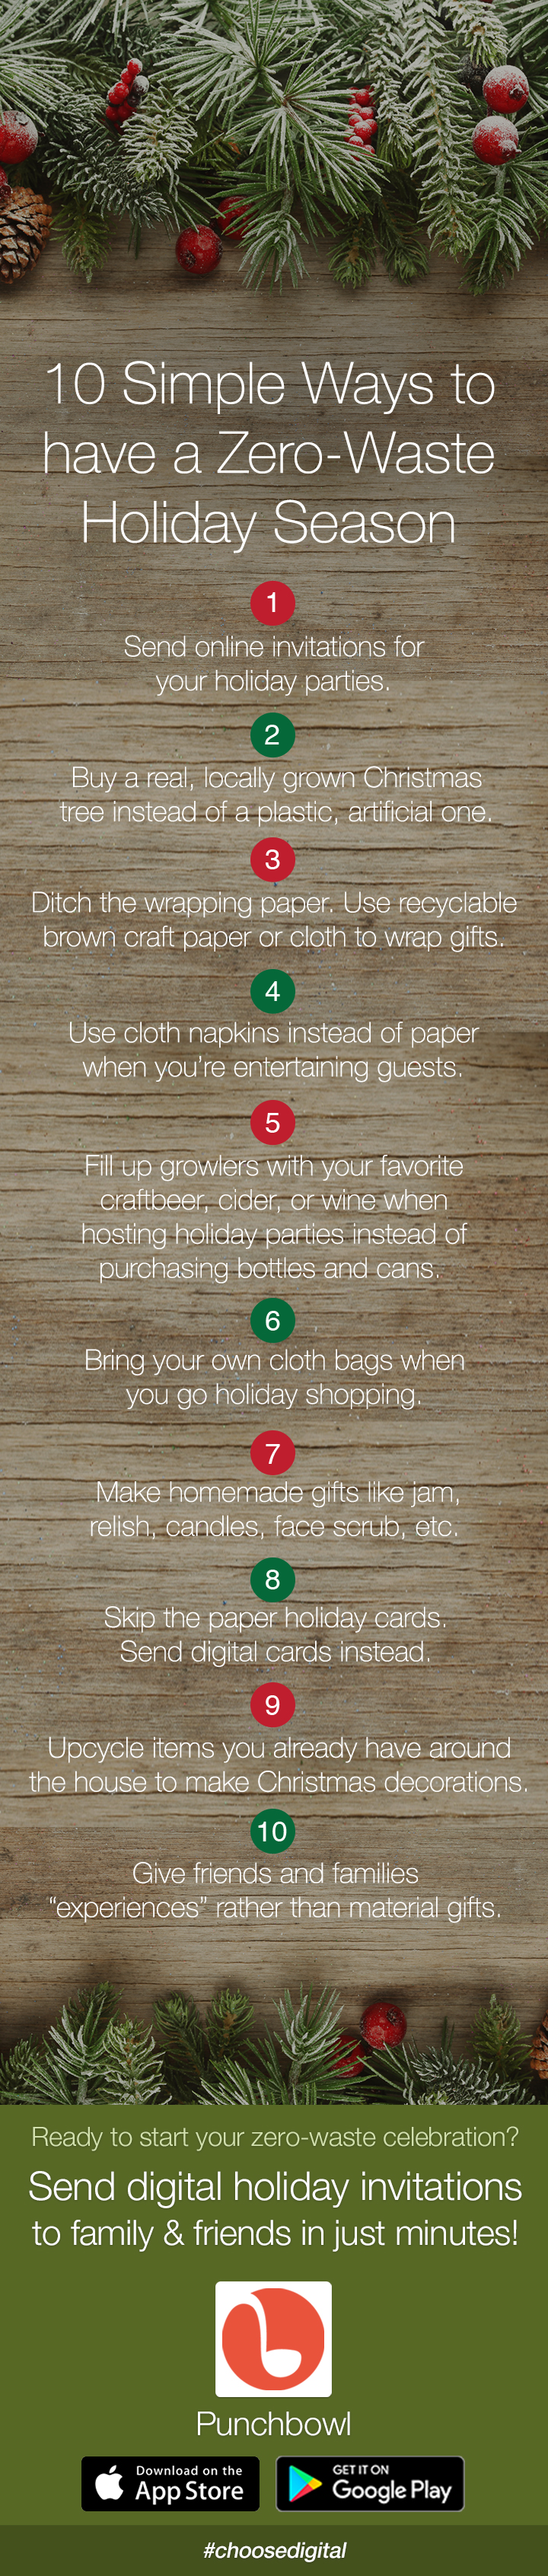 simple ways to have a zero waste holiday season infographic punchbowl